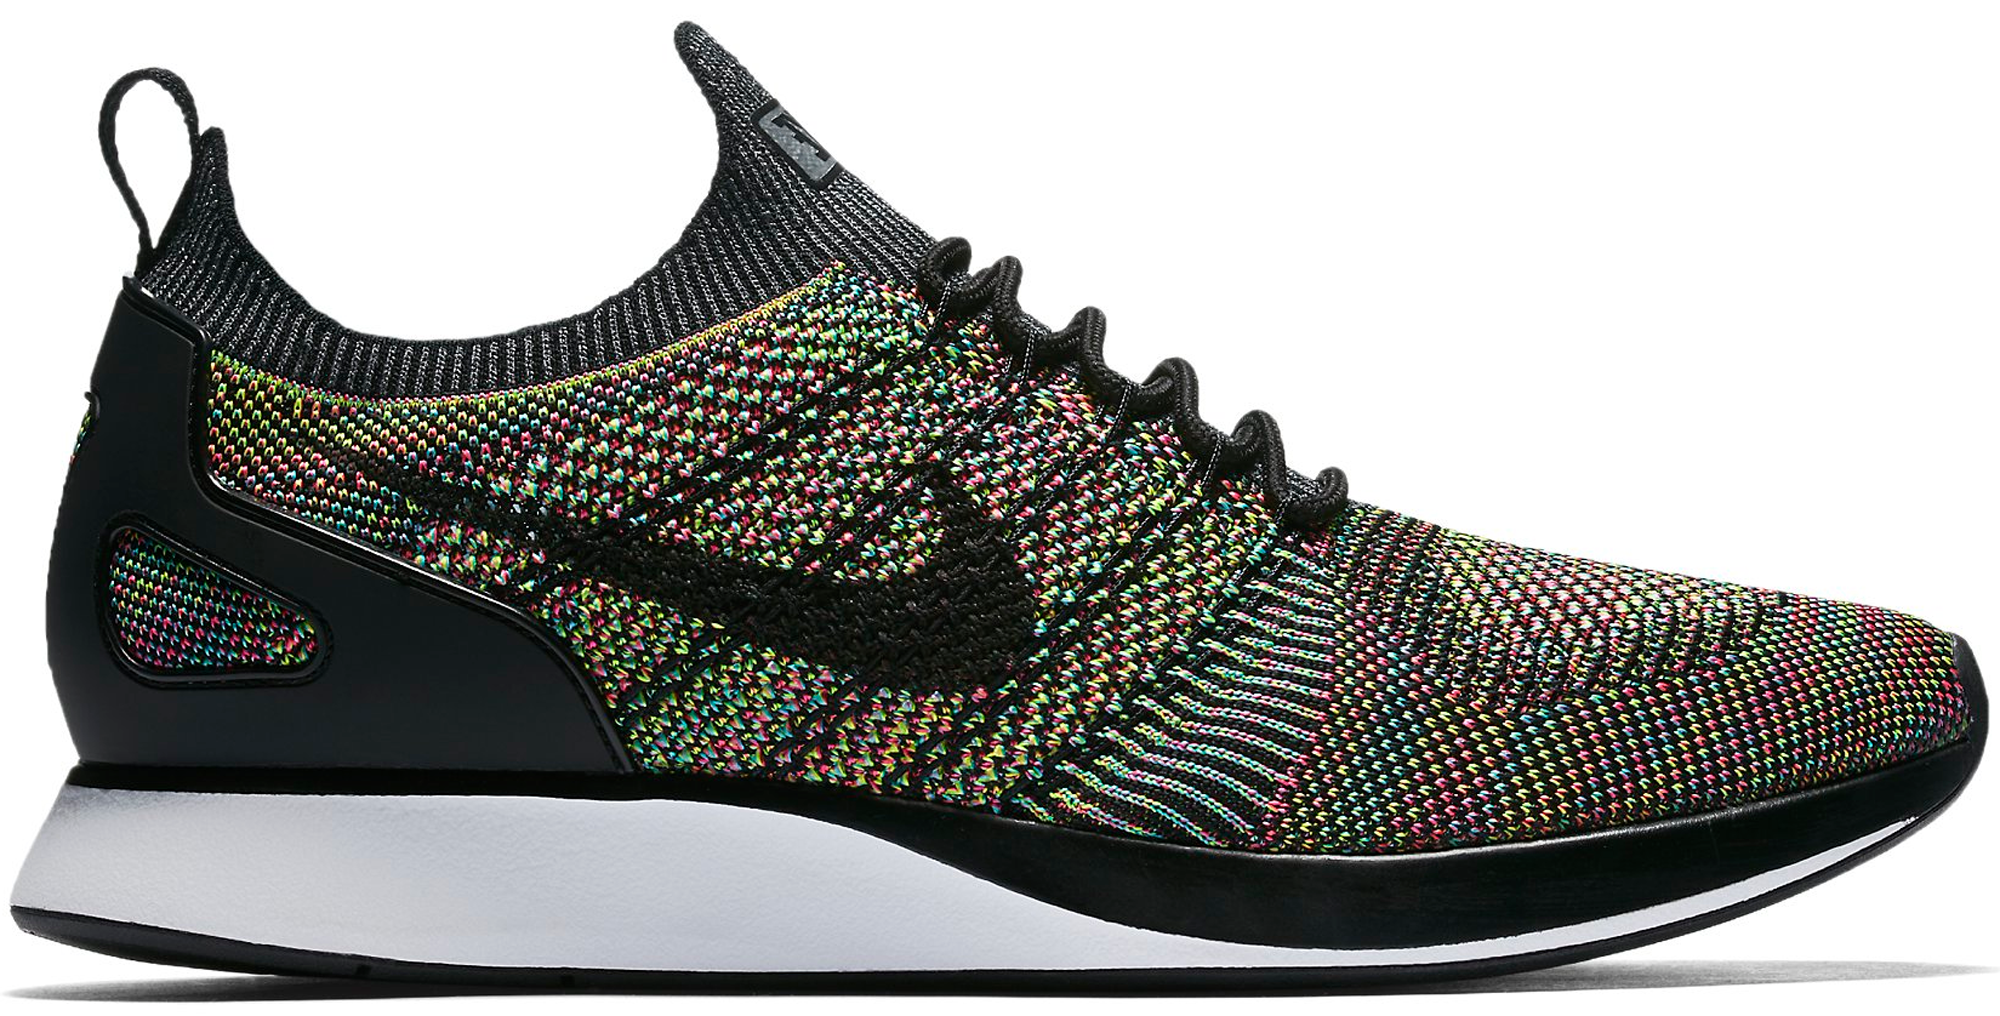 c44b9eb937ef Nike Air Zoom Mariah Flyknit Racer Premium Multi-Color - StockX News